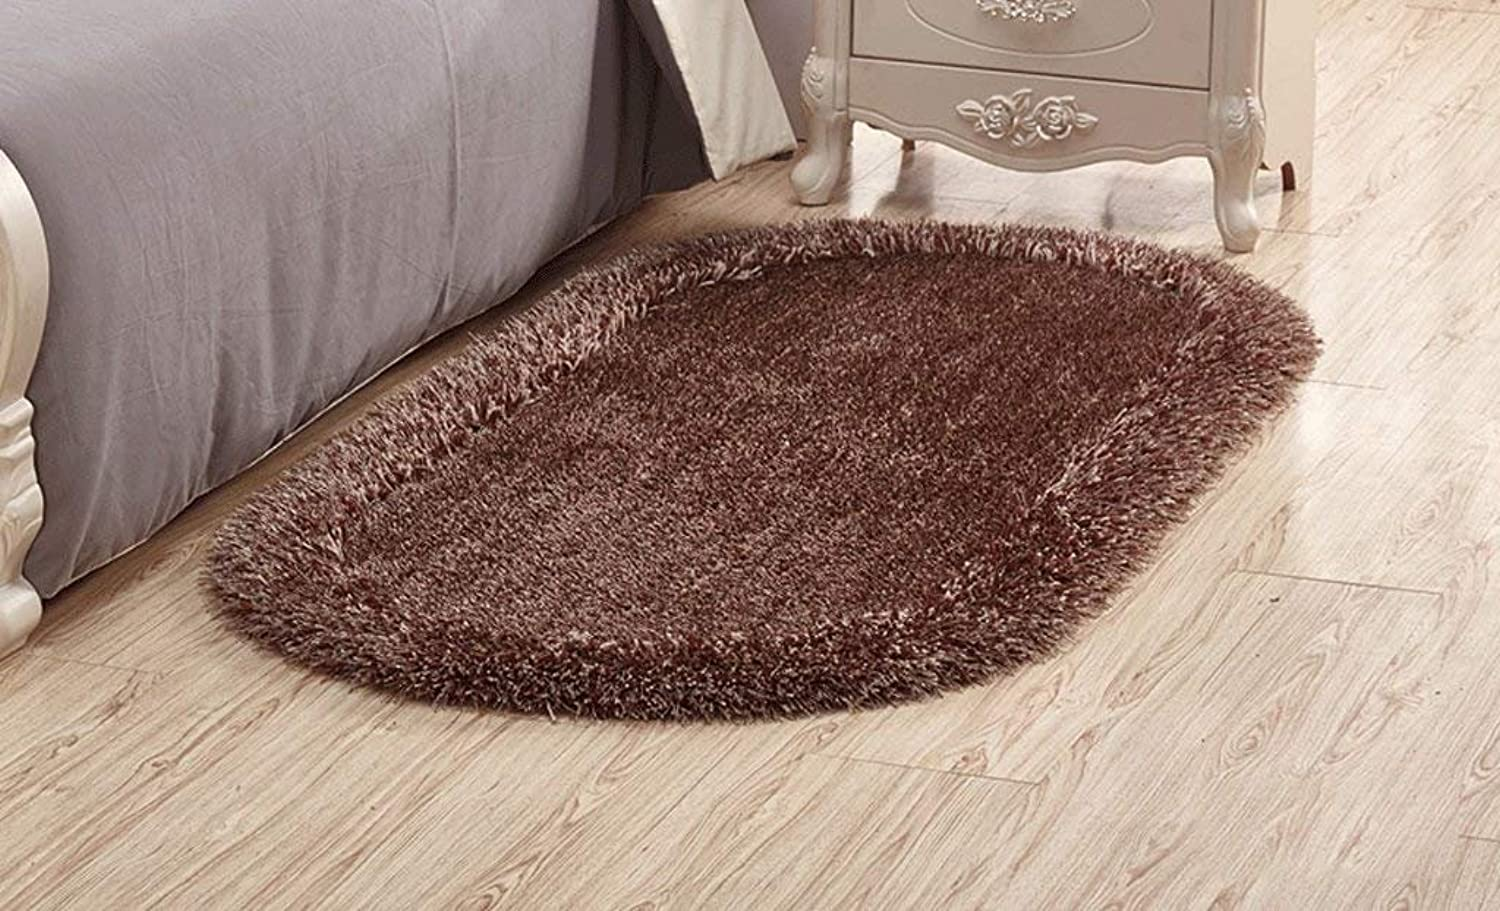 Carpet, Stretch siJSB Oval Thicker Soften Bright Wire Bedroom Bedside Carpet Simple Fashion European Style Rural Living Room Carpet Soft and Comfortable (color    9, Size   80  160cm)